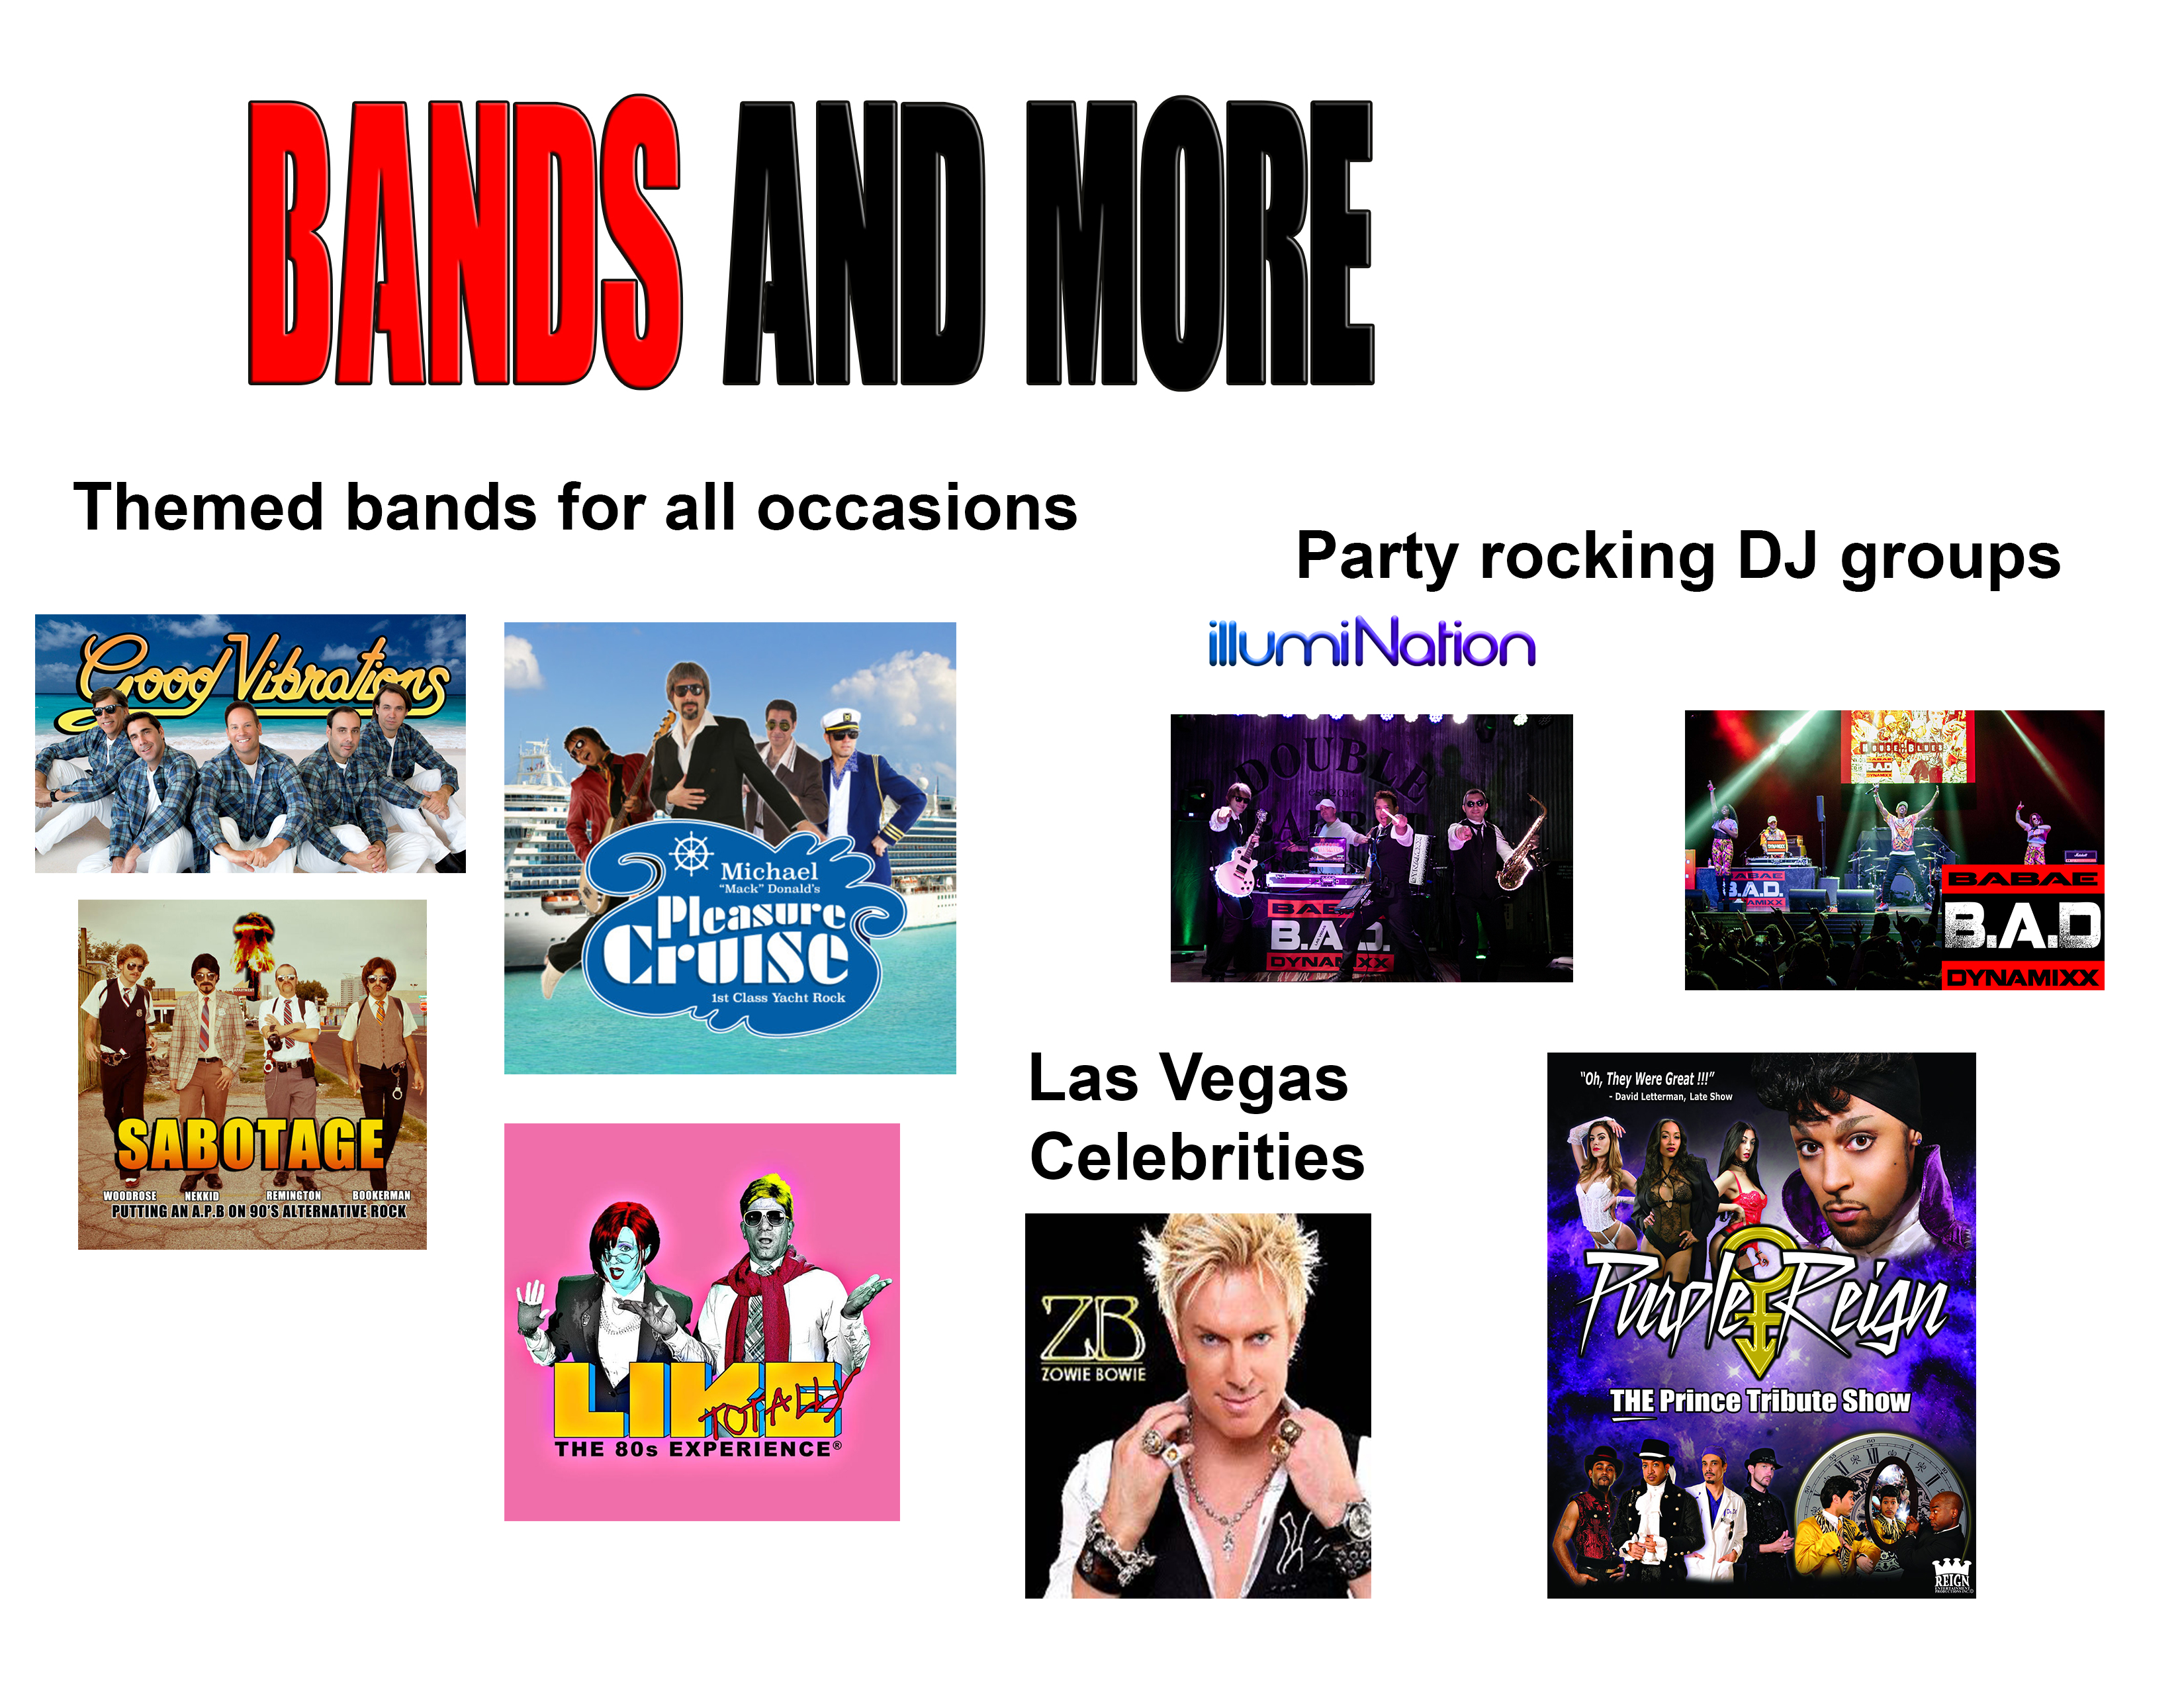 Bands and More